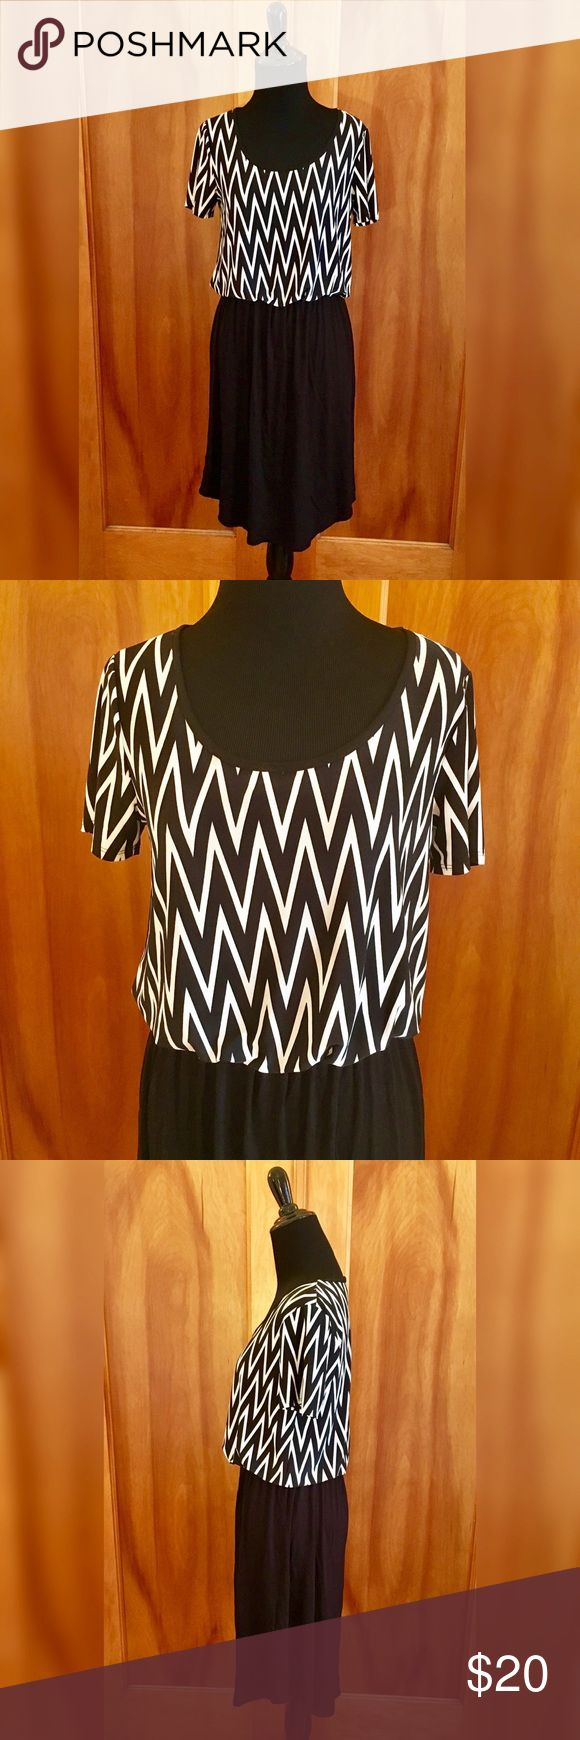 Saint Paradise black & white chevron dress Dress with a black and white chevron top and solid black bottom. Brand is Saint Paradise, purchased through Zulily. New without tags. Recommended for someone with a longer torso. Nice and light for summer! Saint Paradise Dresses